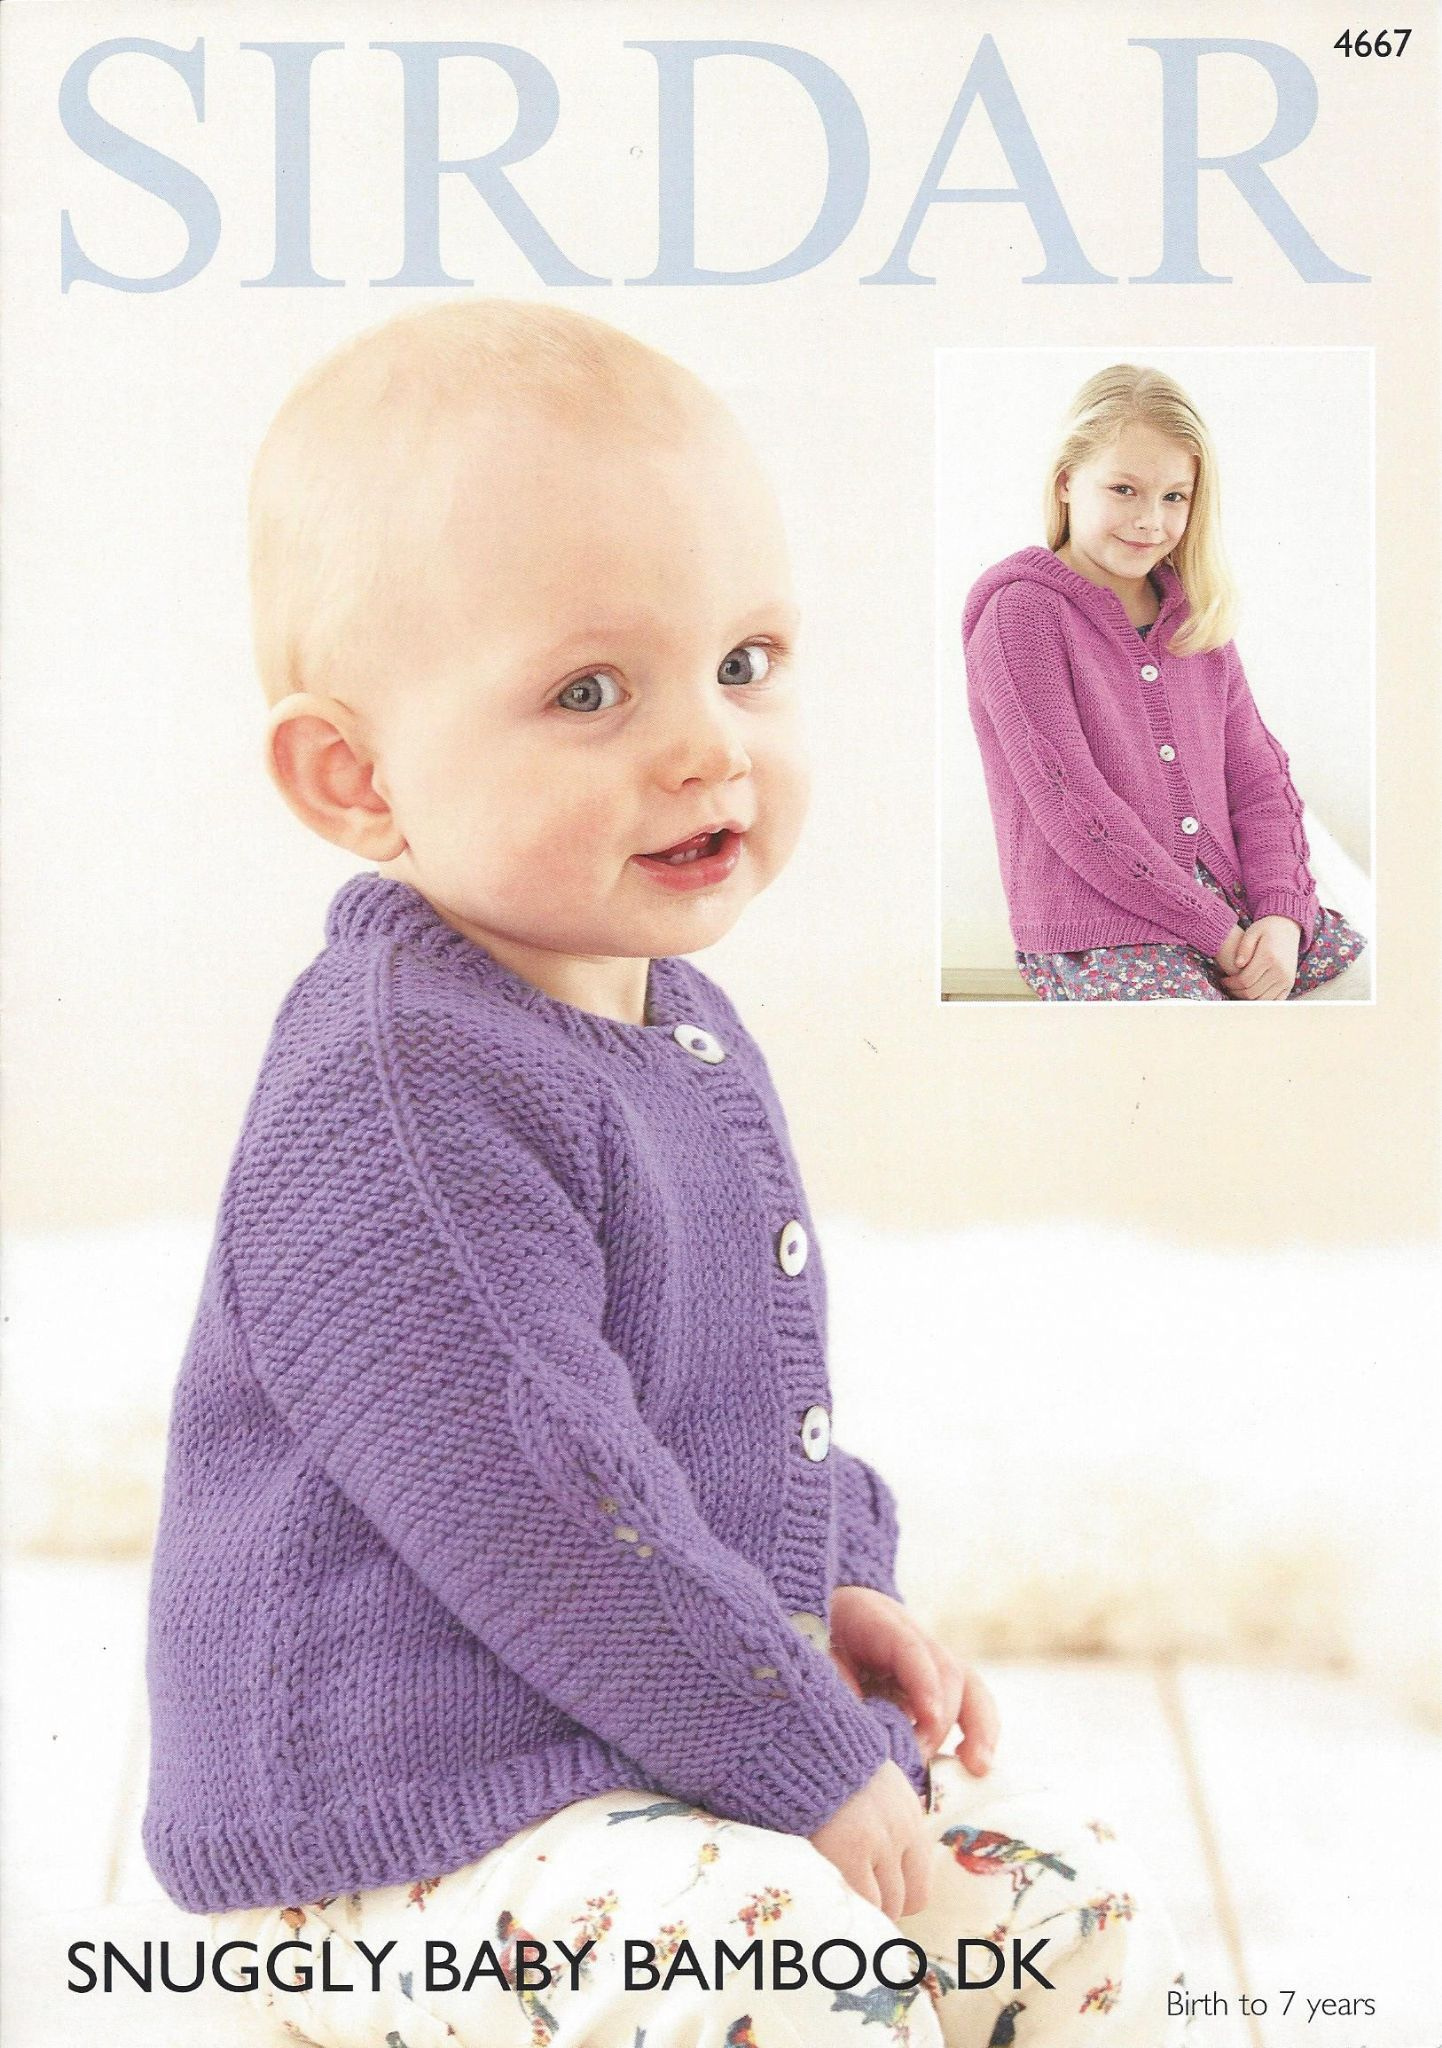 Sirdar Snuggly Baby Bamboo Dk 4667 Cardigans Knitting